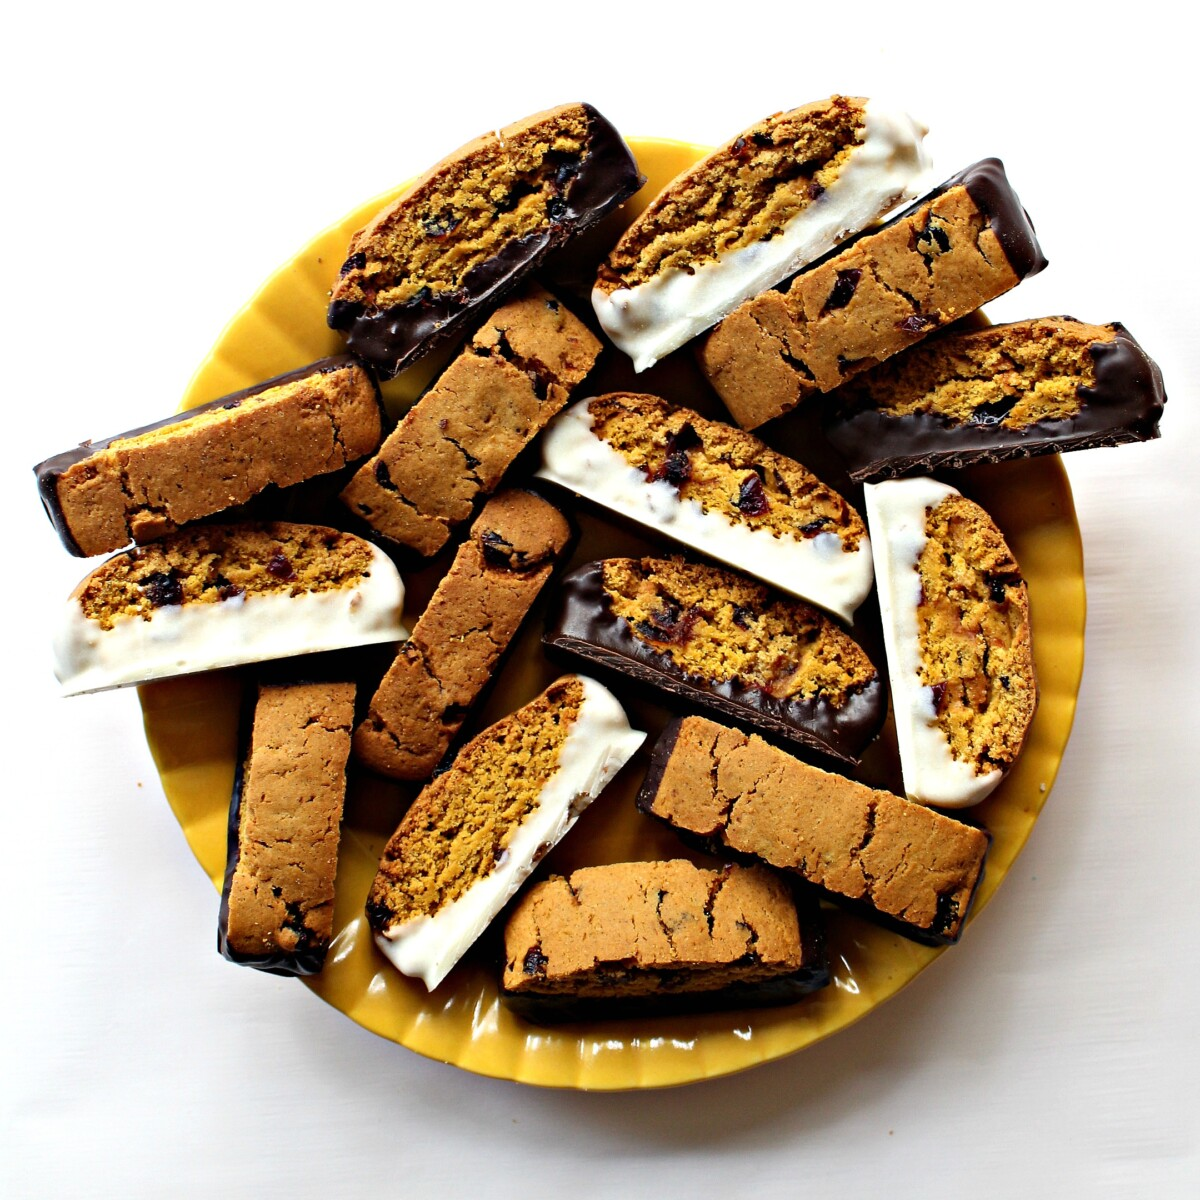 Chocolate dipped Pumpkin Biscotti decoratively arranged on a round, yellow serving platter.